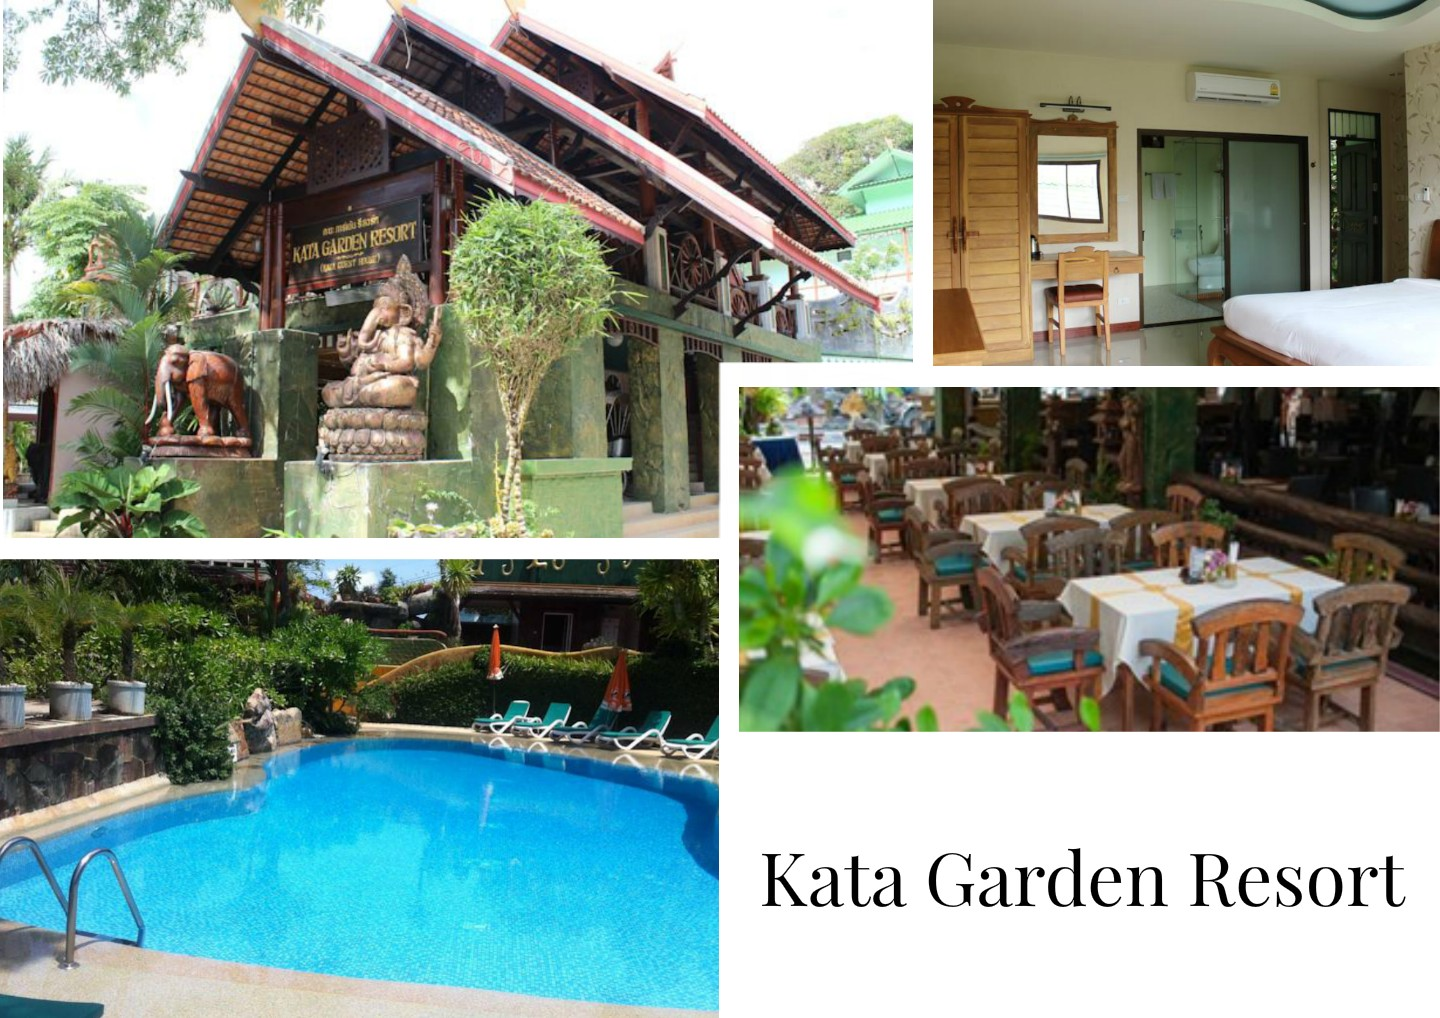 kata-garden-resort by Kata Diving Service